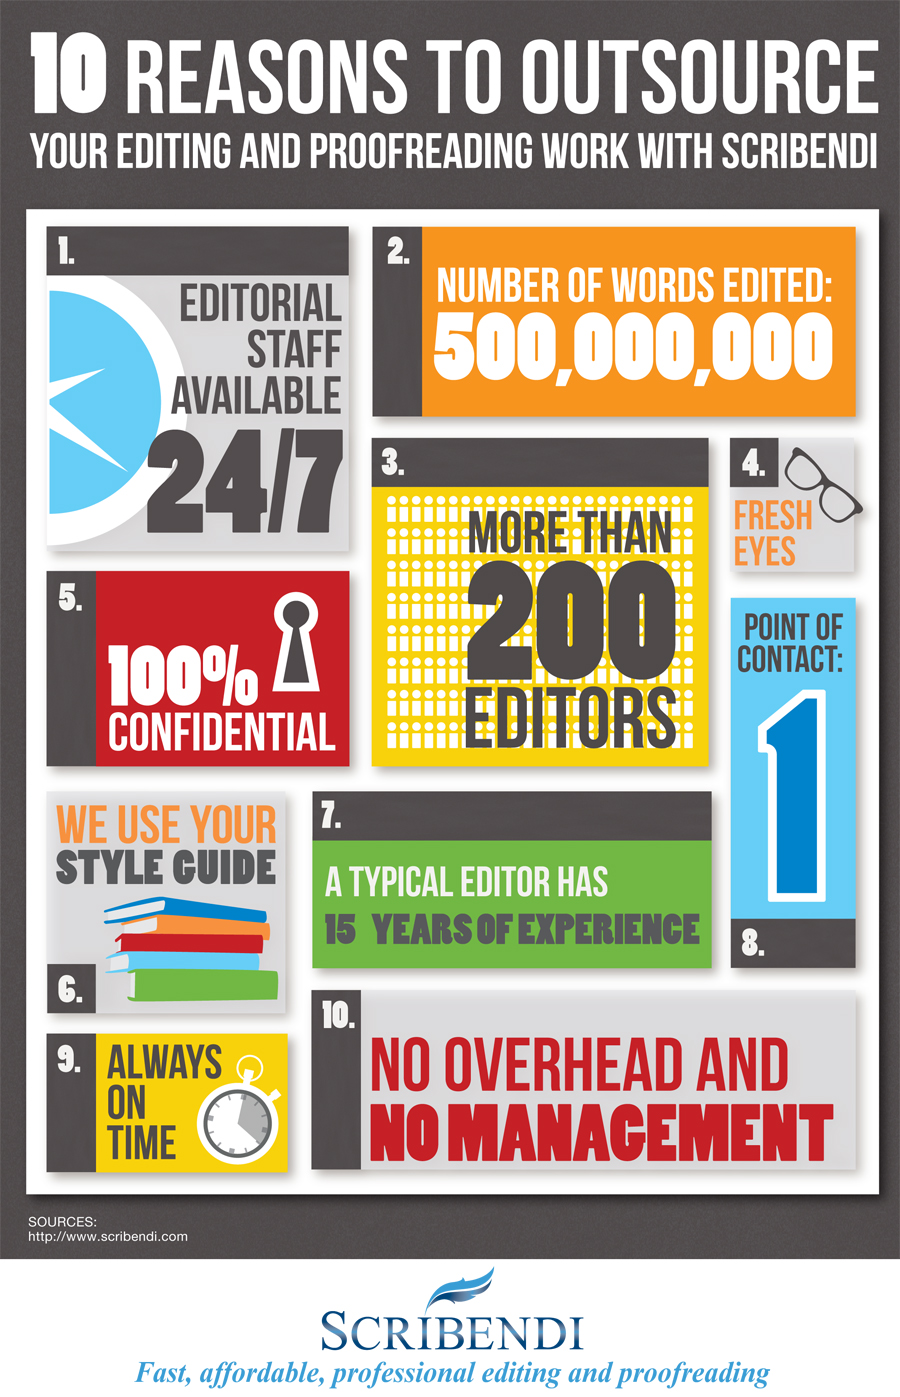 10 Reasons To Outsource Your Editing And Proofreading Work